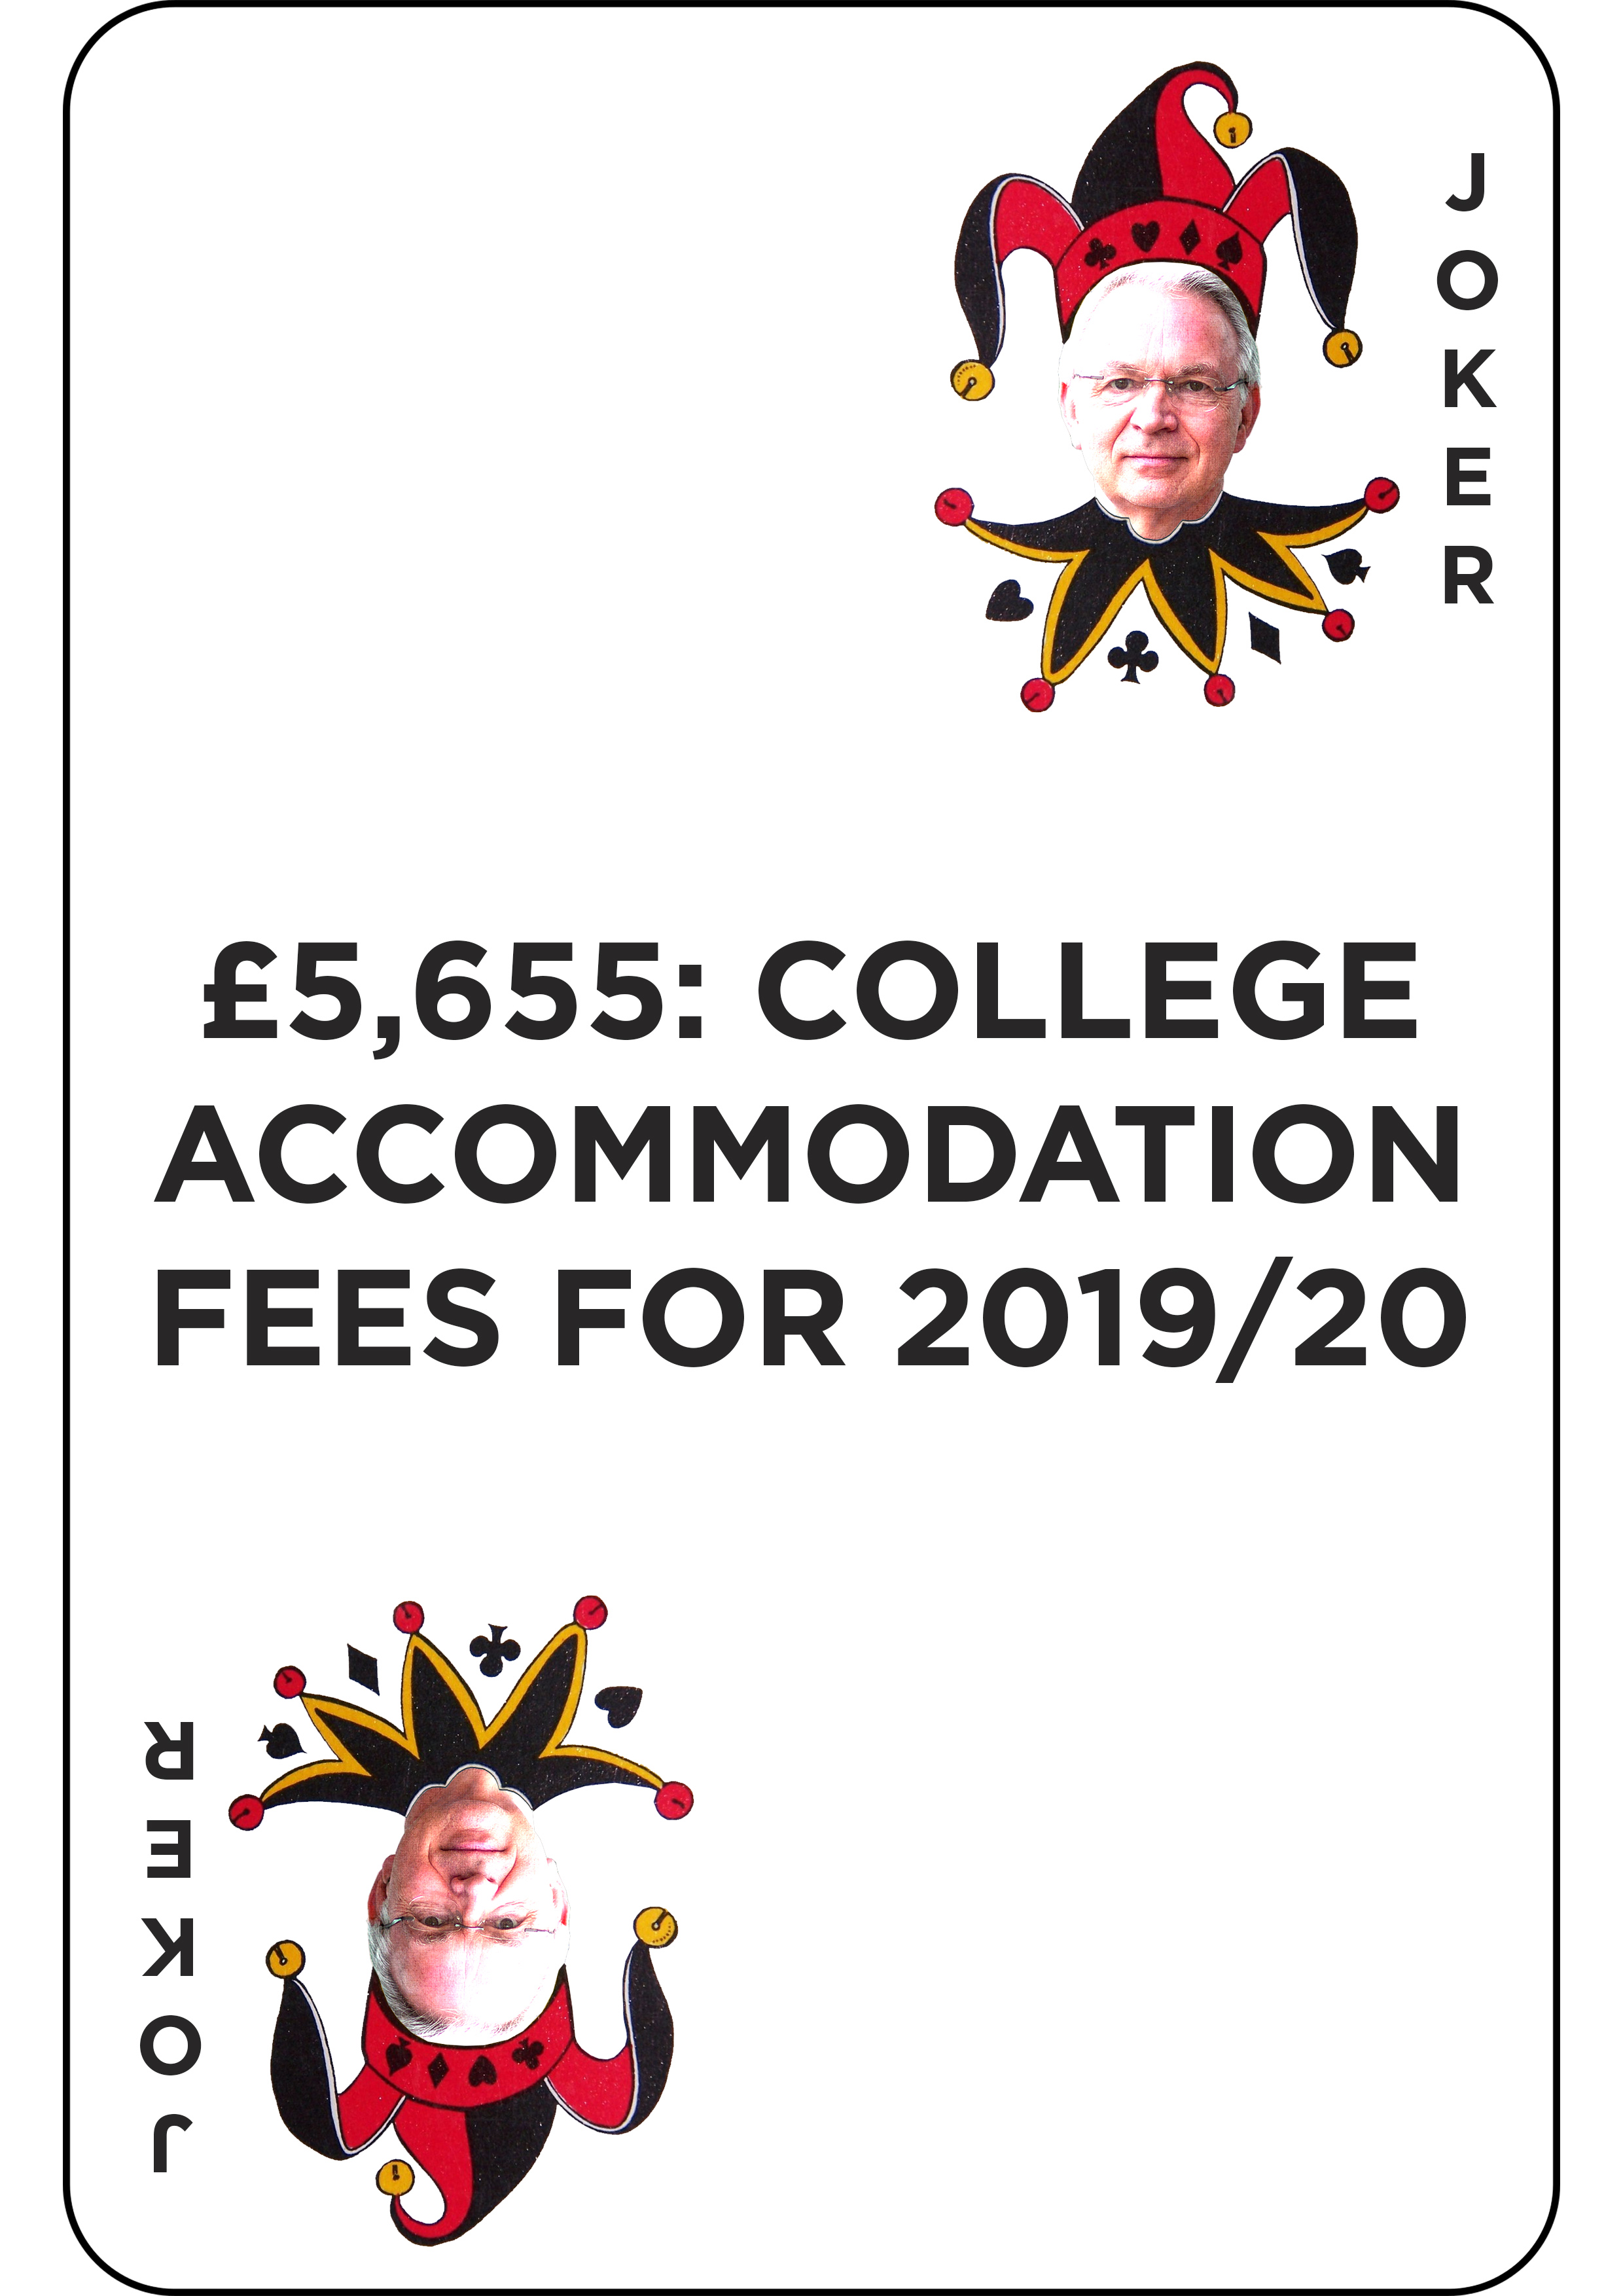 £5,655: college accommodation fees for 2019/20